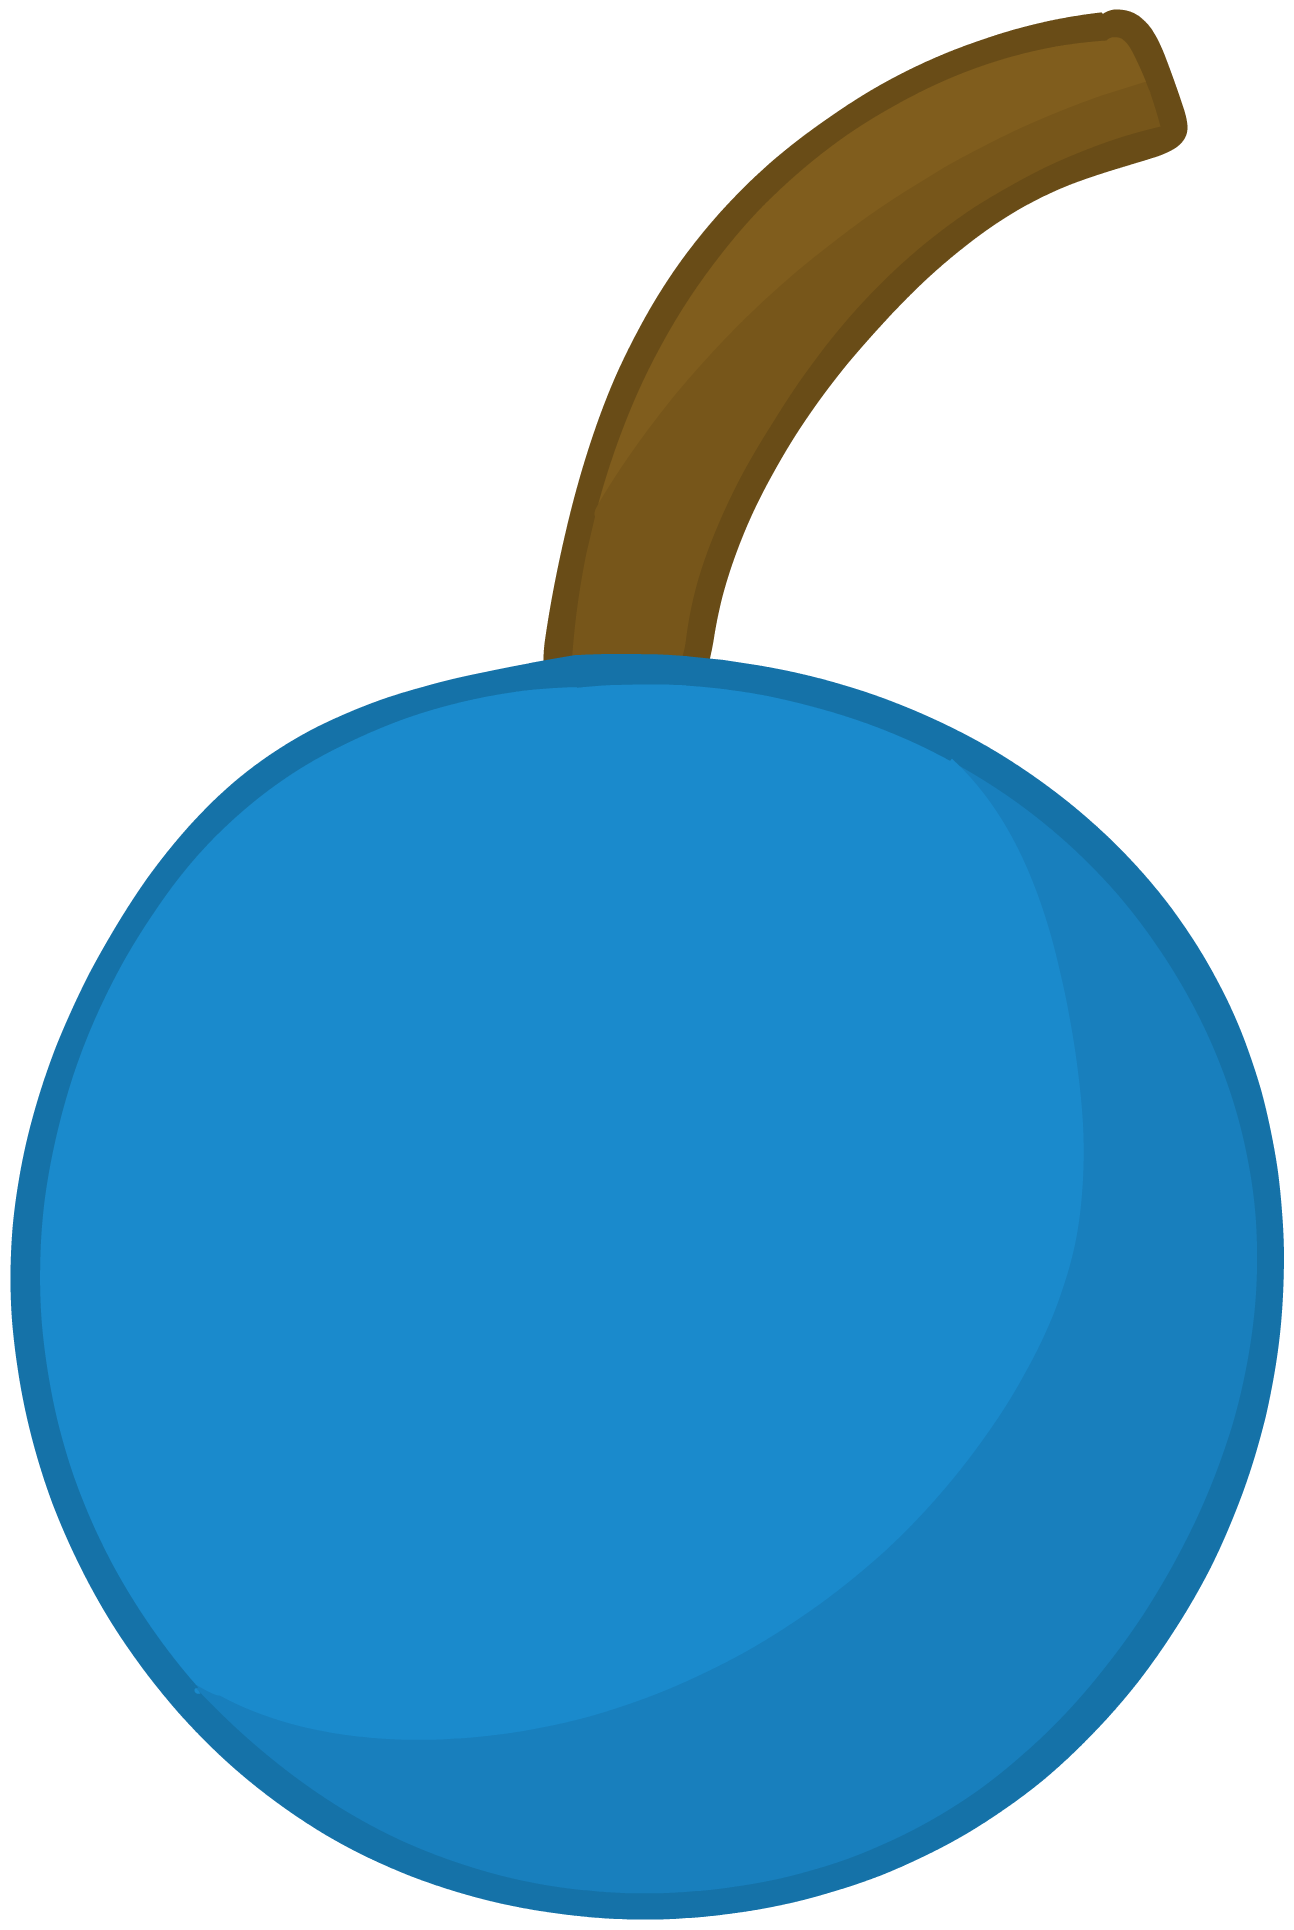 Clipart tv circle object. Image berry body png